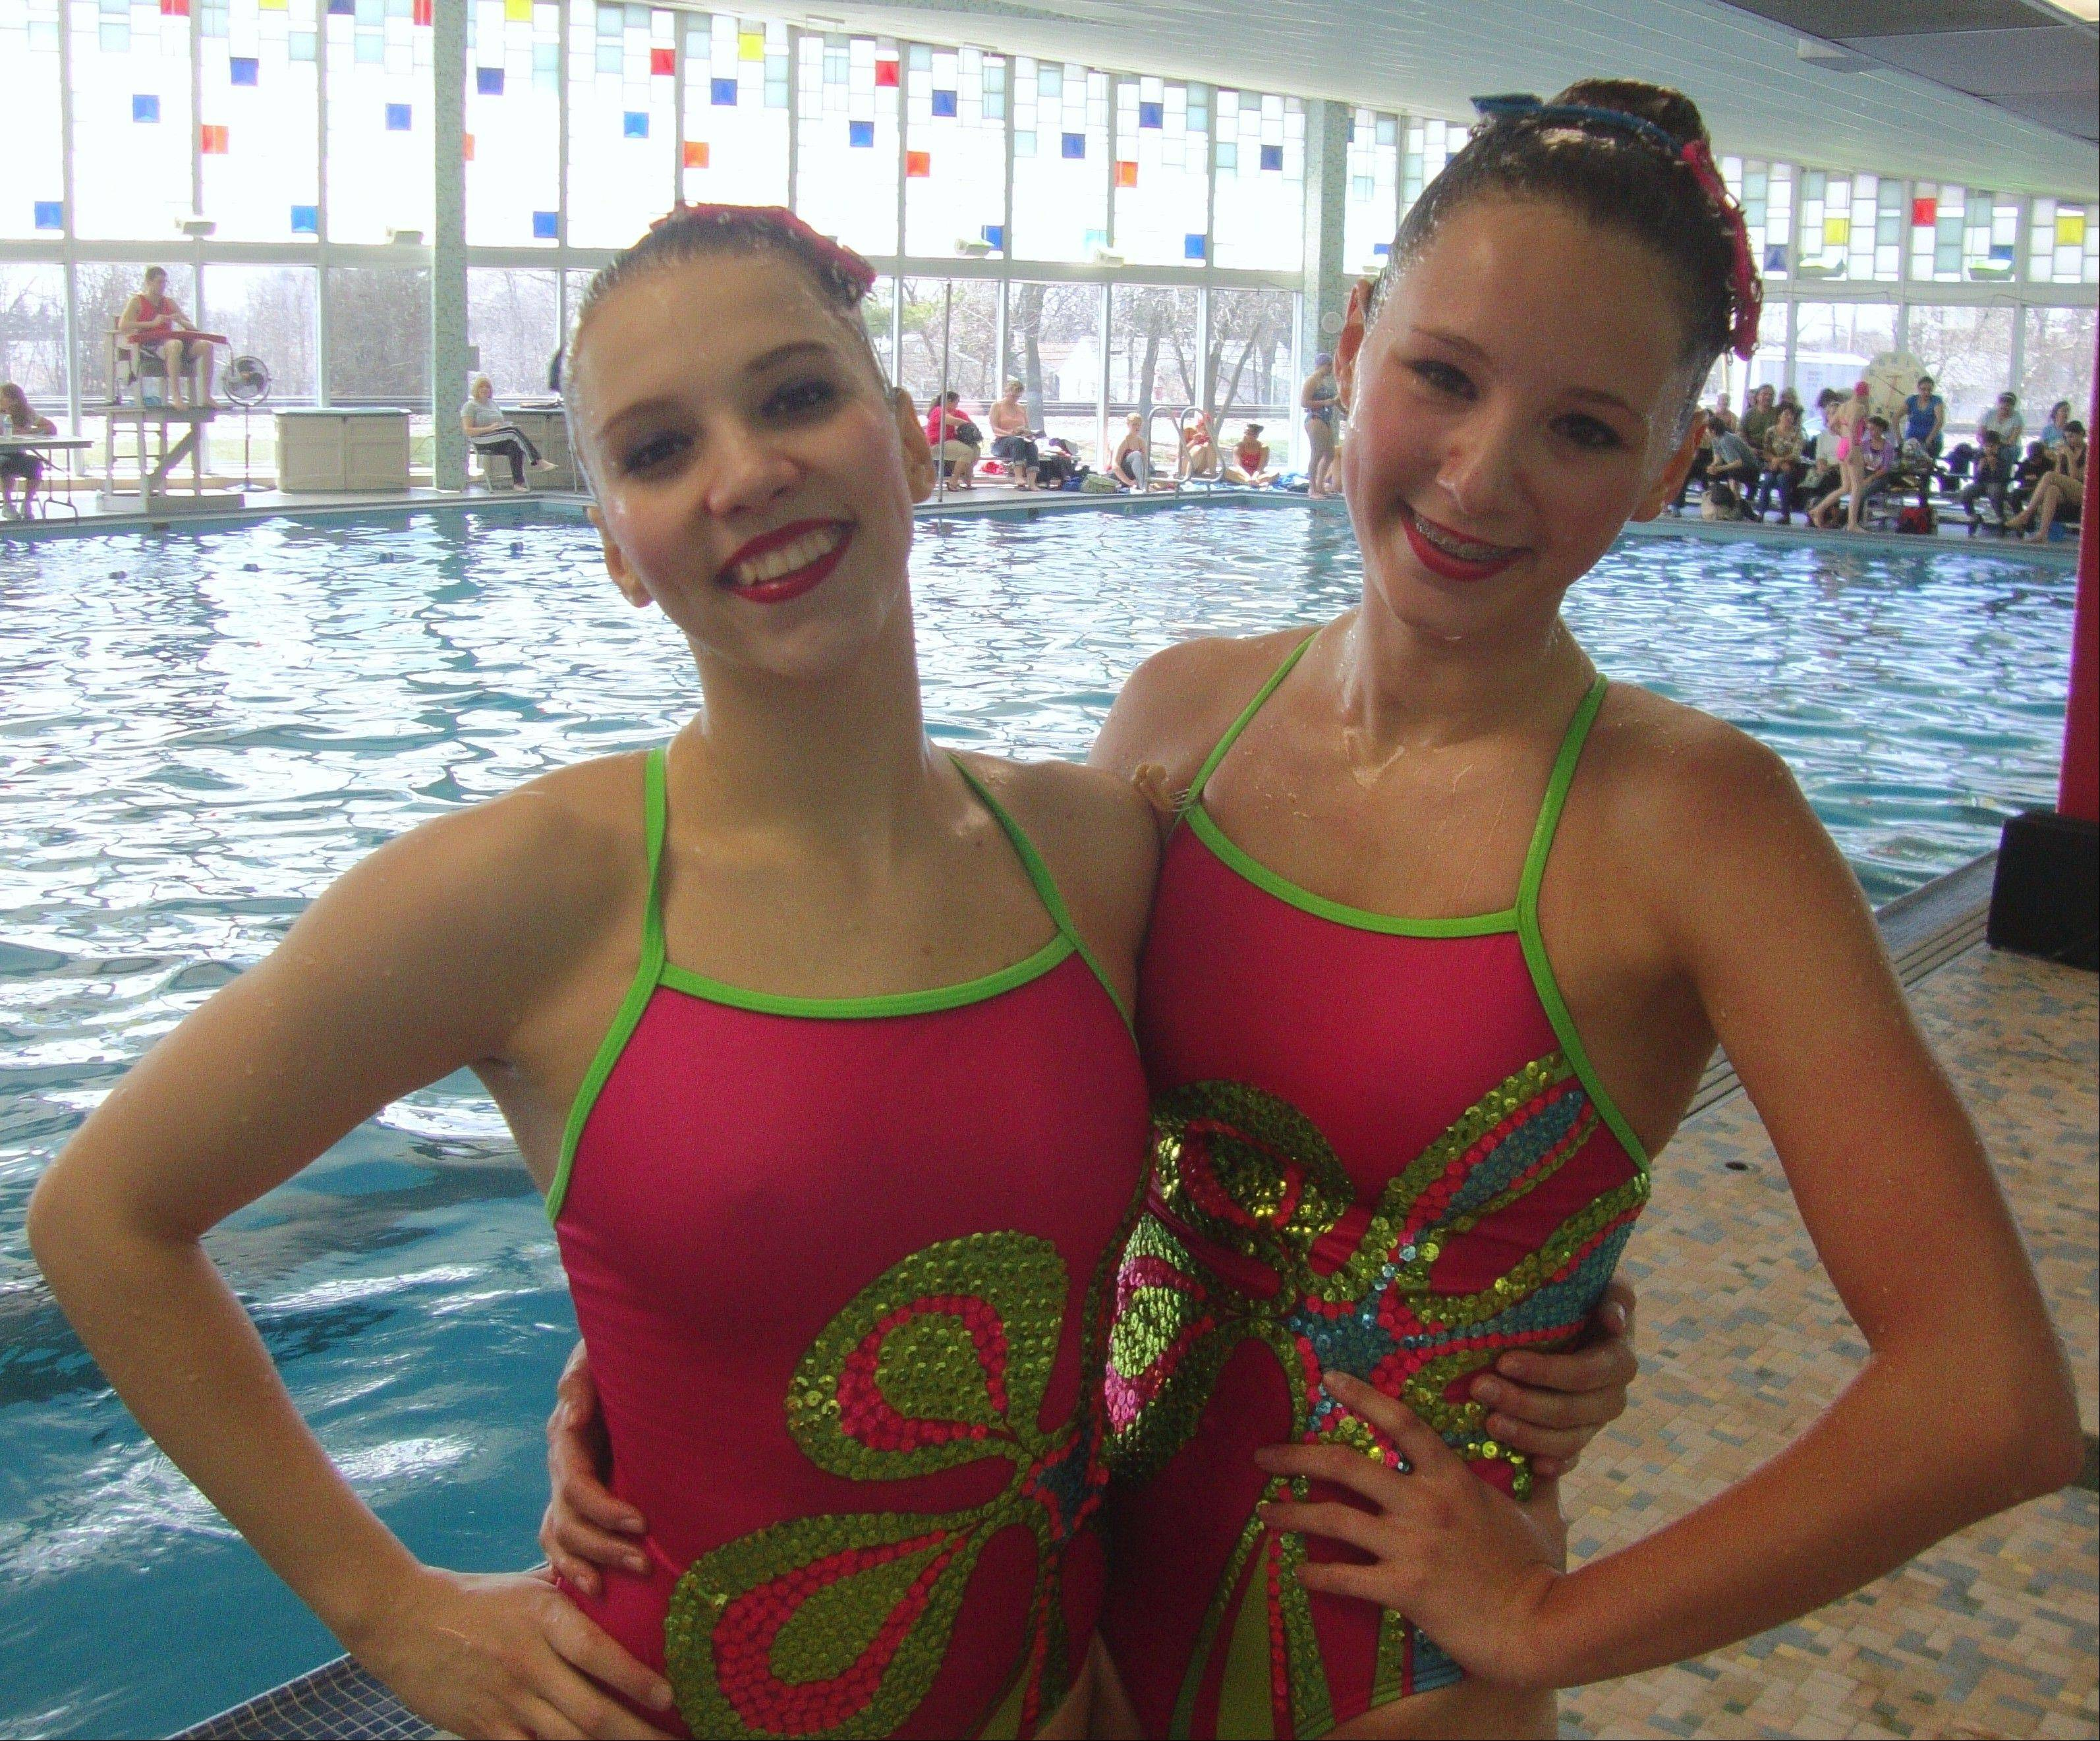 AquaSprites duo Sasha Boudko and Jenna Gudritz.